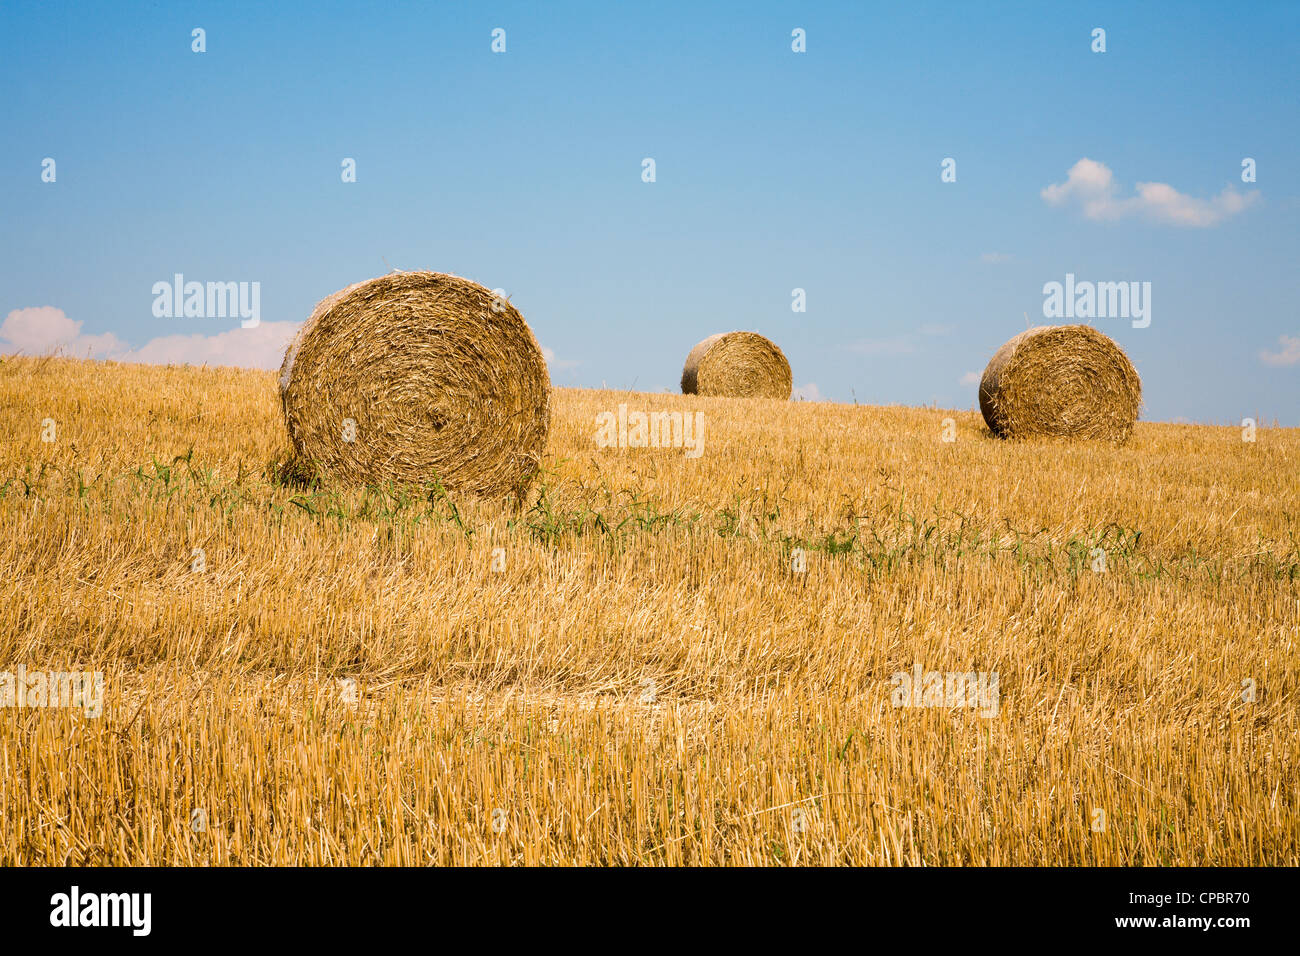 bale of the straw after harvest - Stock Image